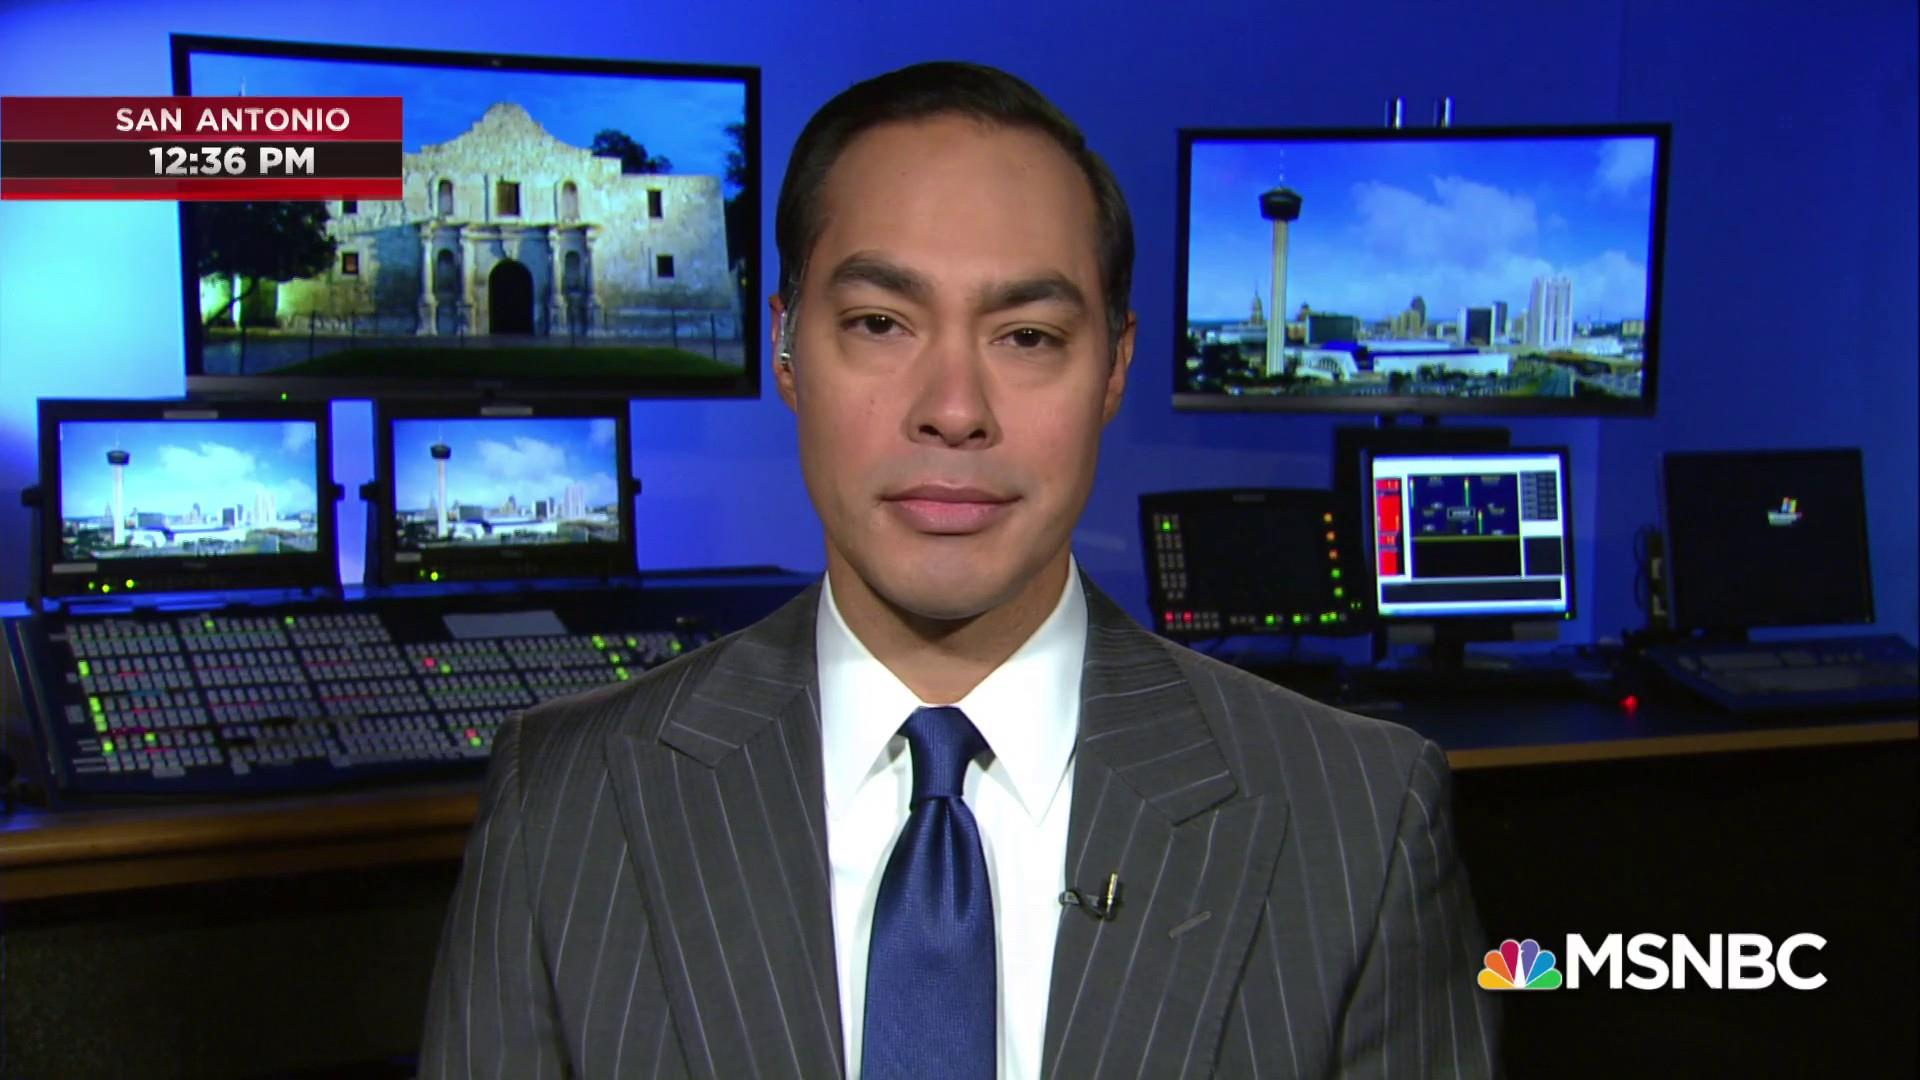 Julián Castro: Education and health care are not mutually exclusive